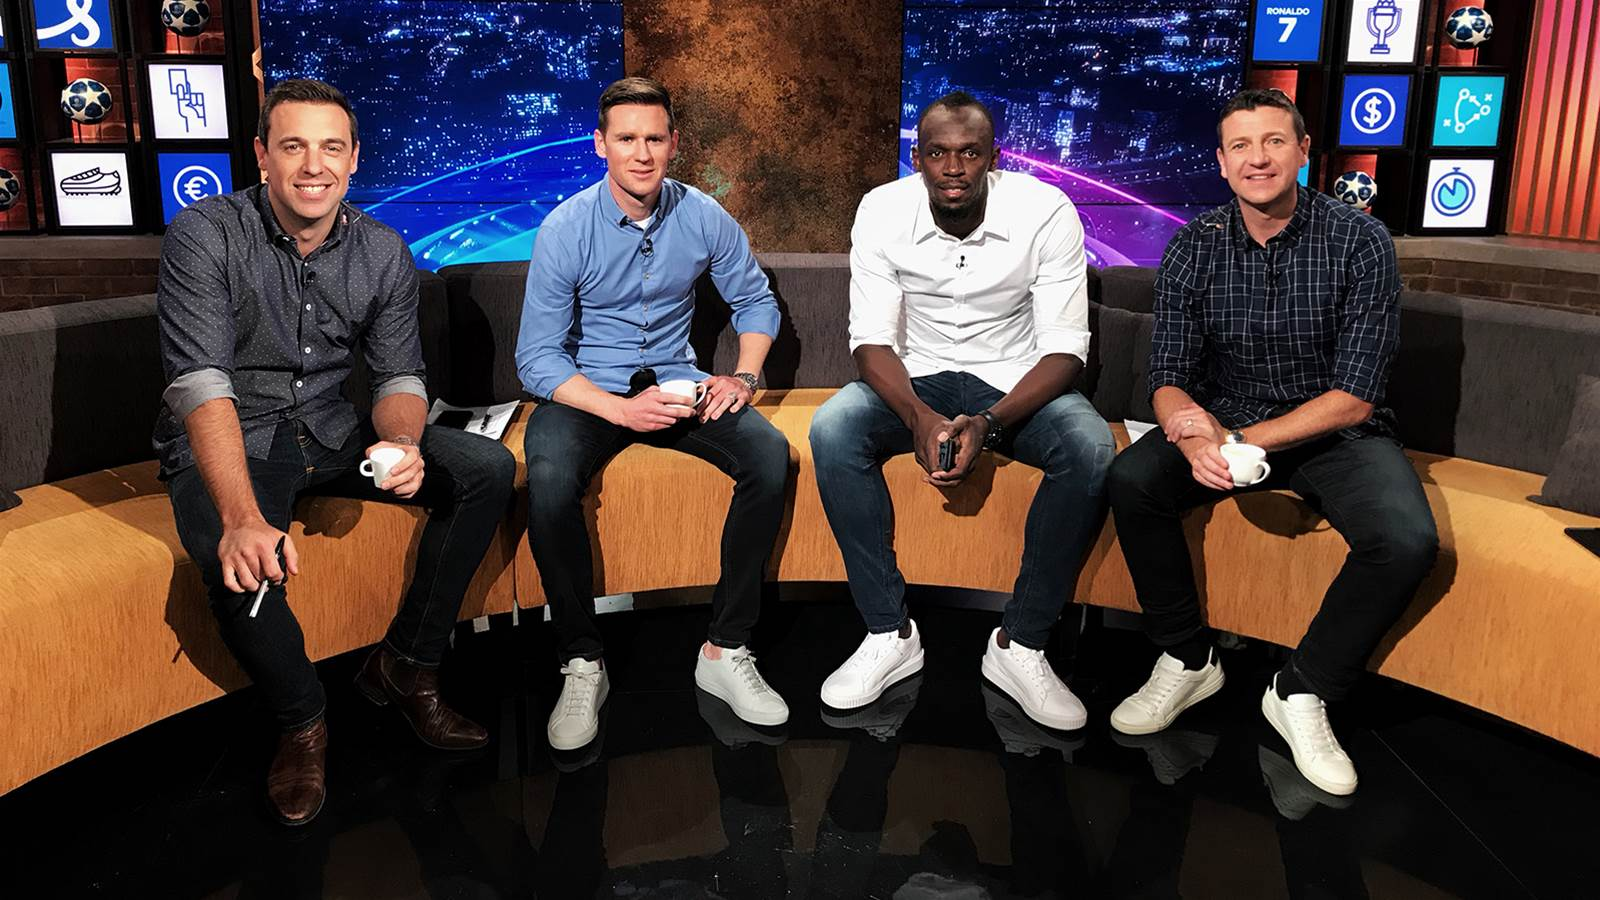 WATCH! Now it's Usain Bolt, football analyst...